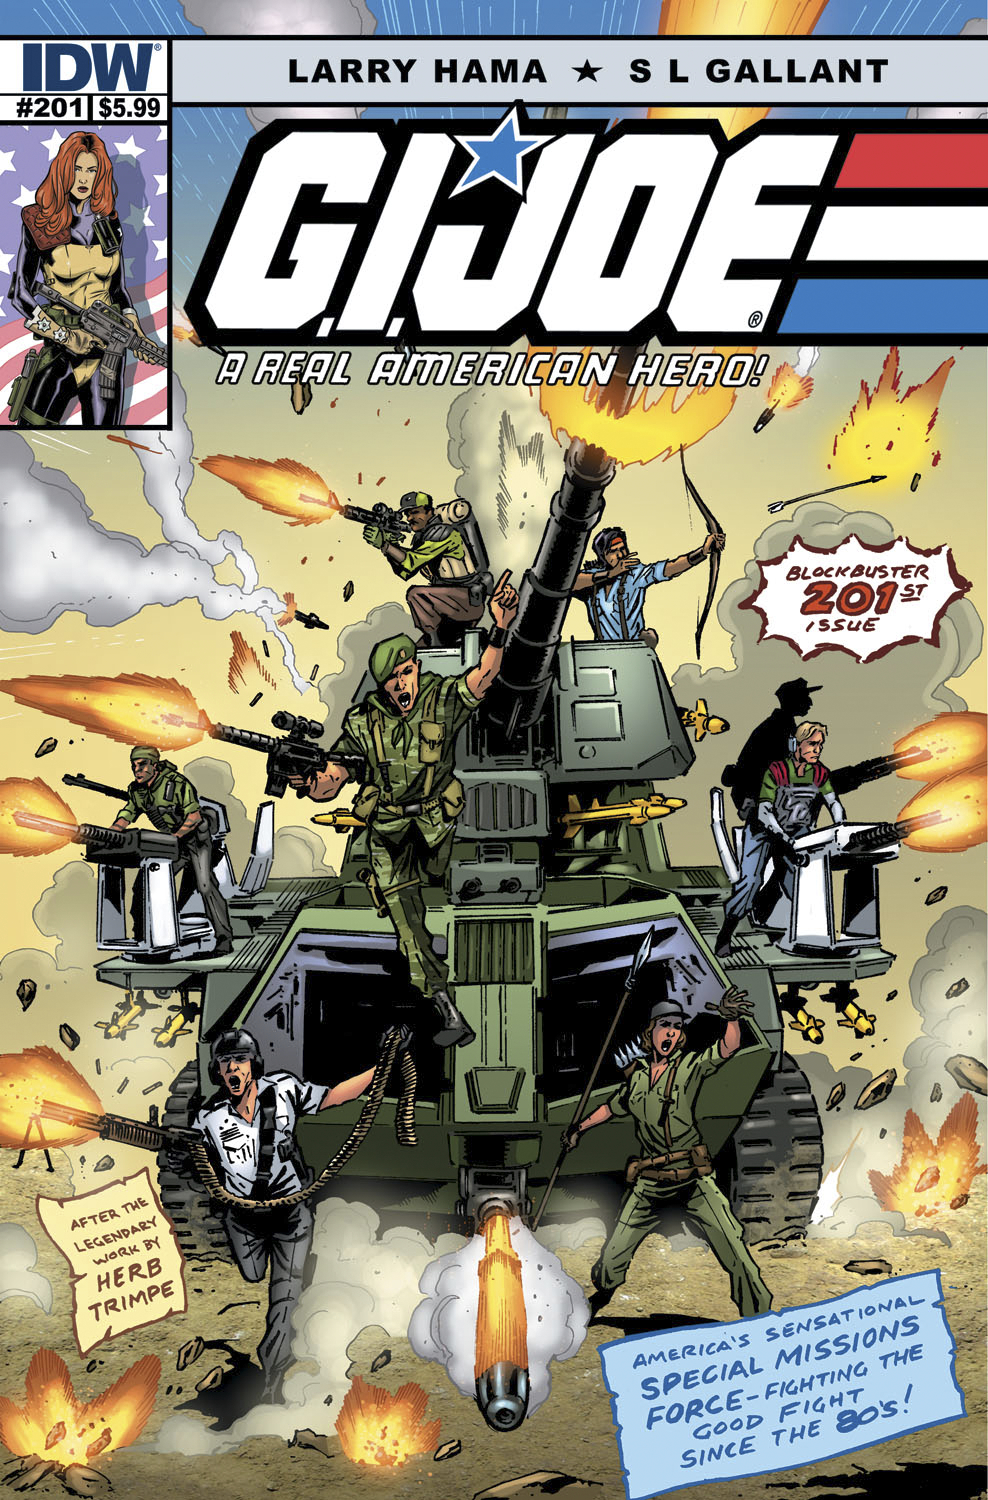 GI JOE A REAL AMERICAN HERO #201